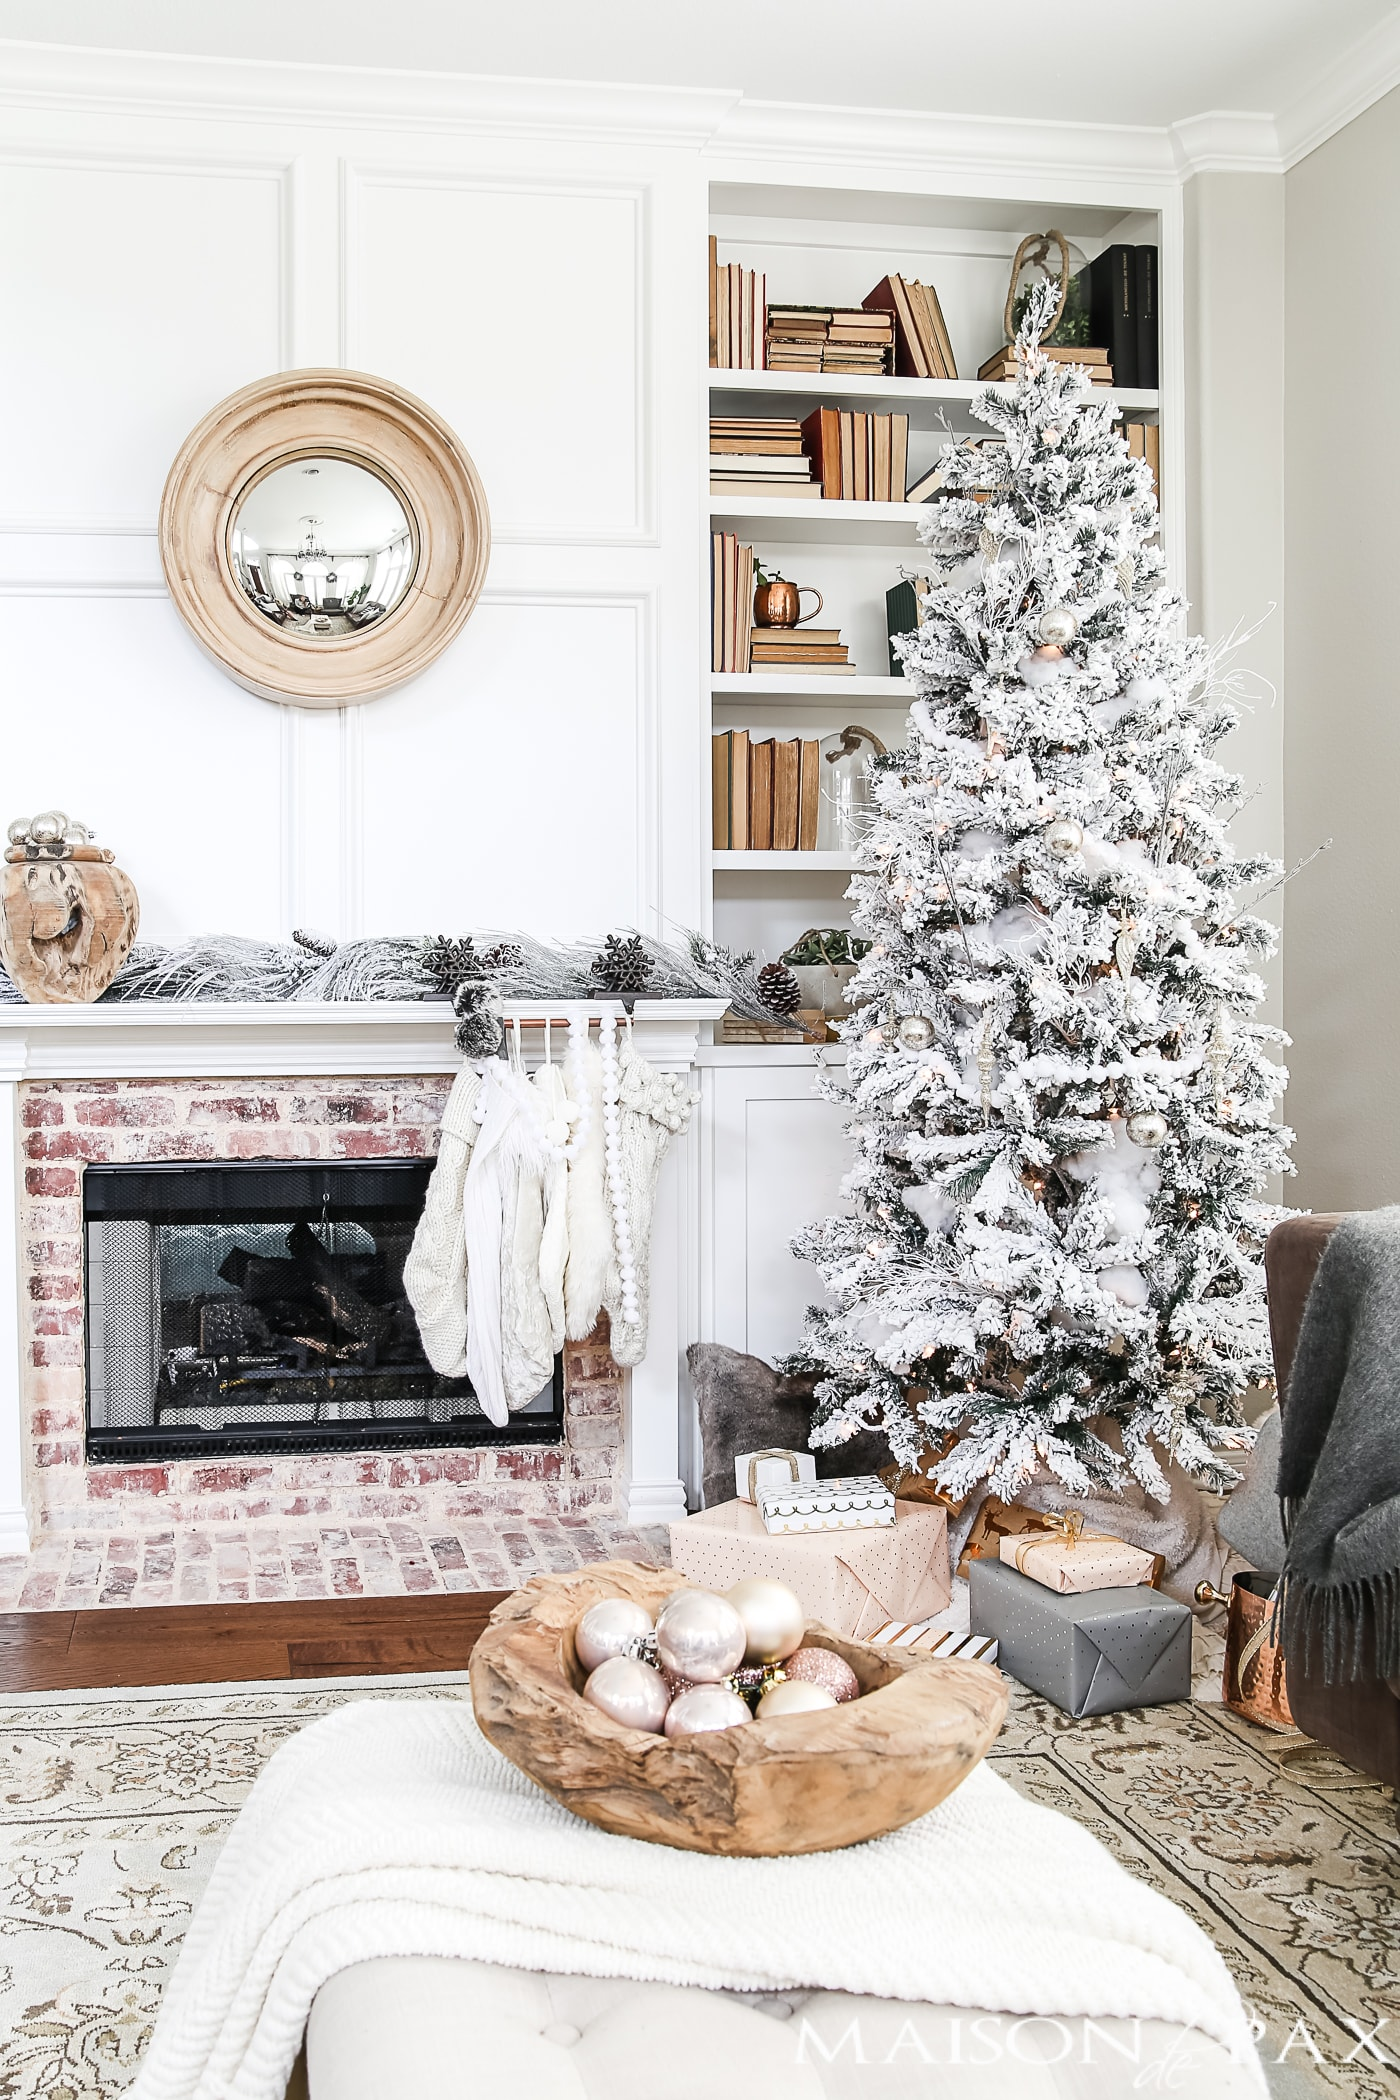 Tips for Simple, Elegant Holiday Decor - Maison de Pax